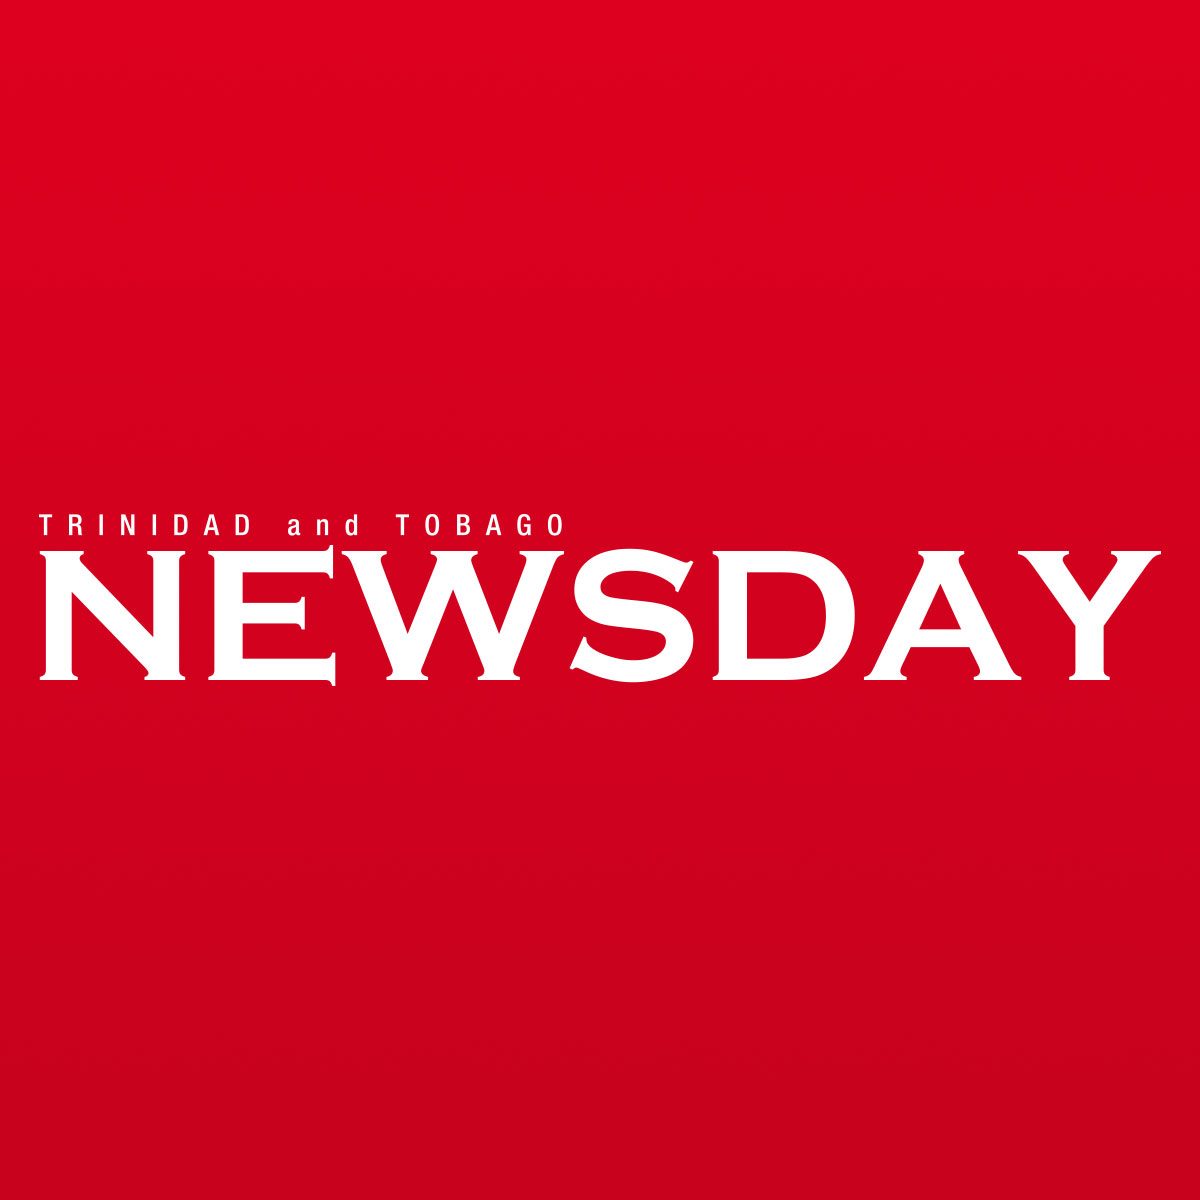 letters to the editor trinidad and tobago newsday